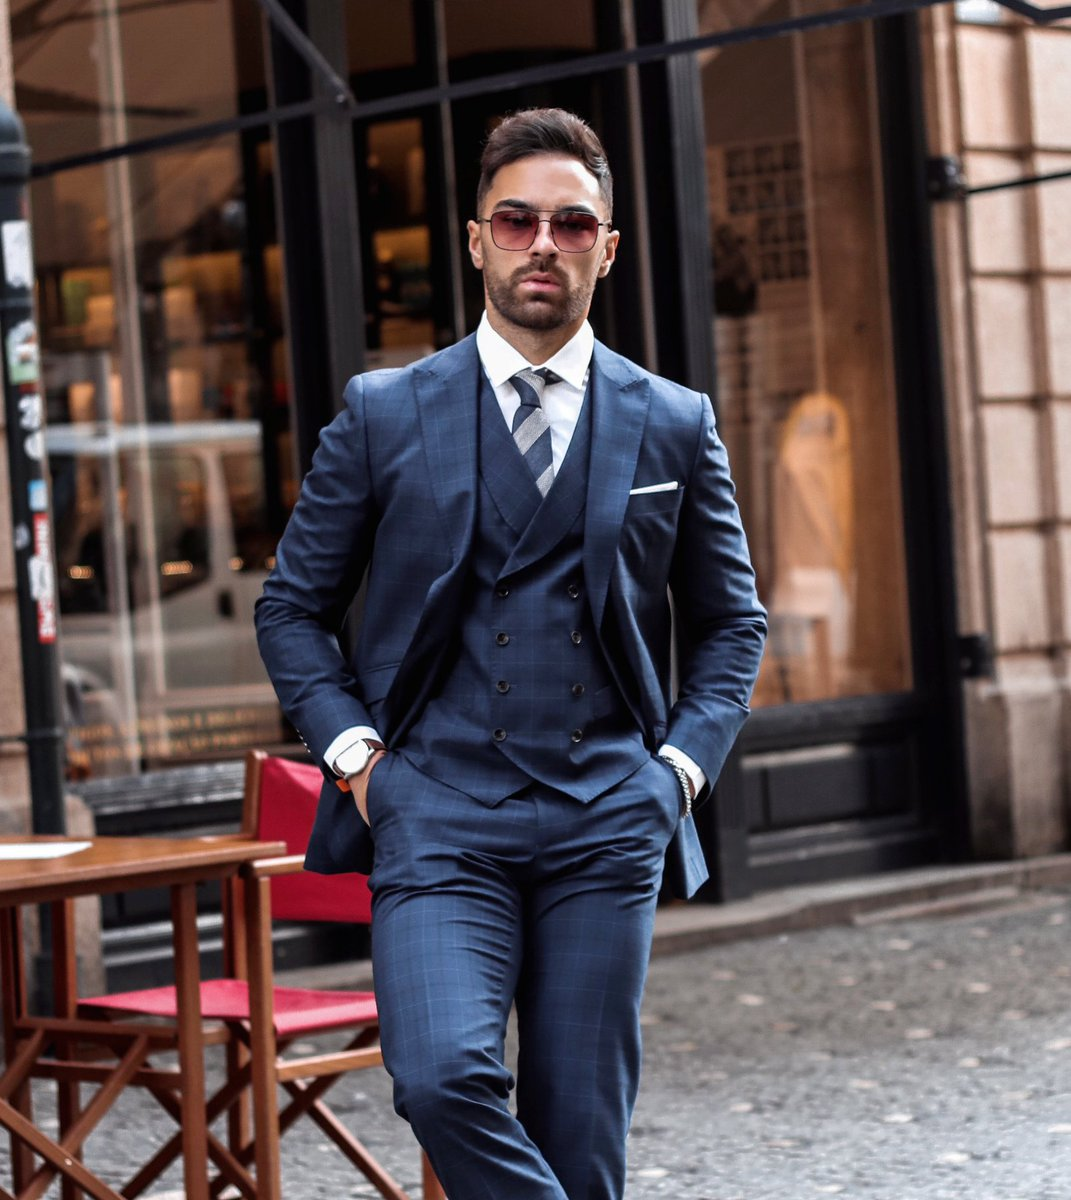 Suits Inc On Twitter Tailored Spirit Discover Our Timeless And Elegant Proposals Of The New Ss20 Suits Collection Menstyle Mensfashion Mensuits Mensuit Menssuits Classy Modernclassic Plaid Style Menswear Suitstyle Dapper Ootd